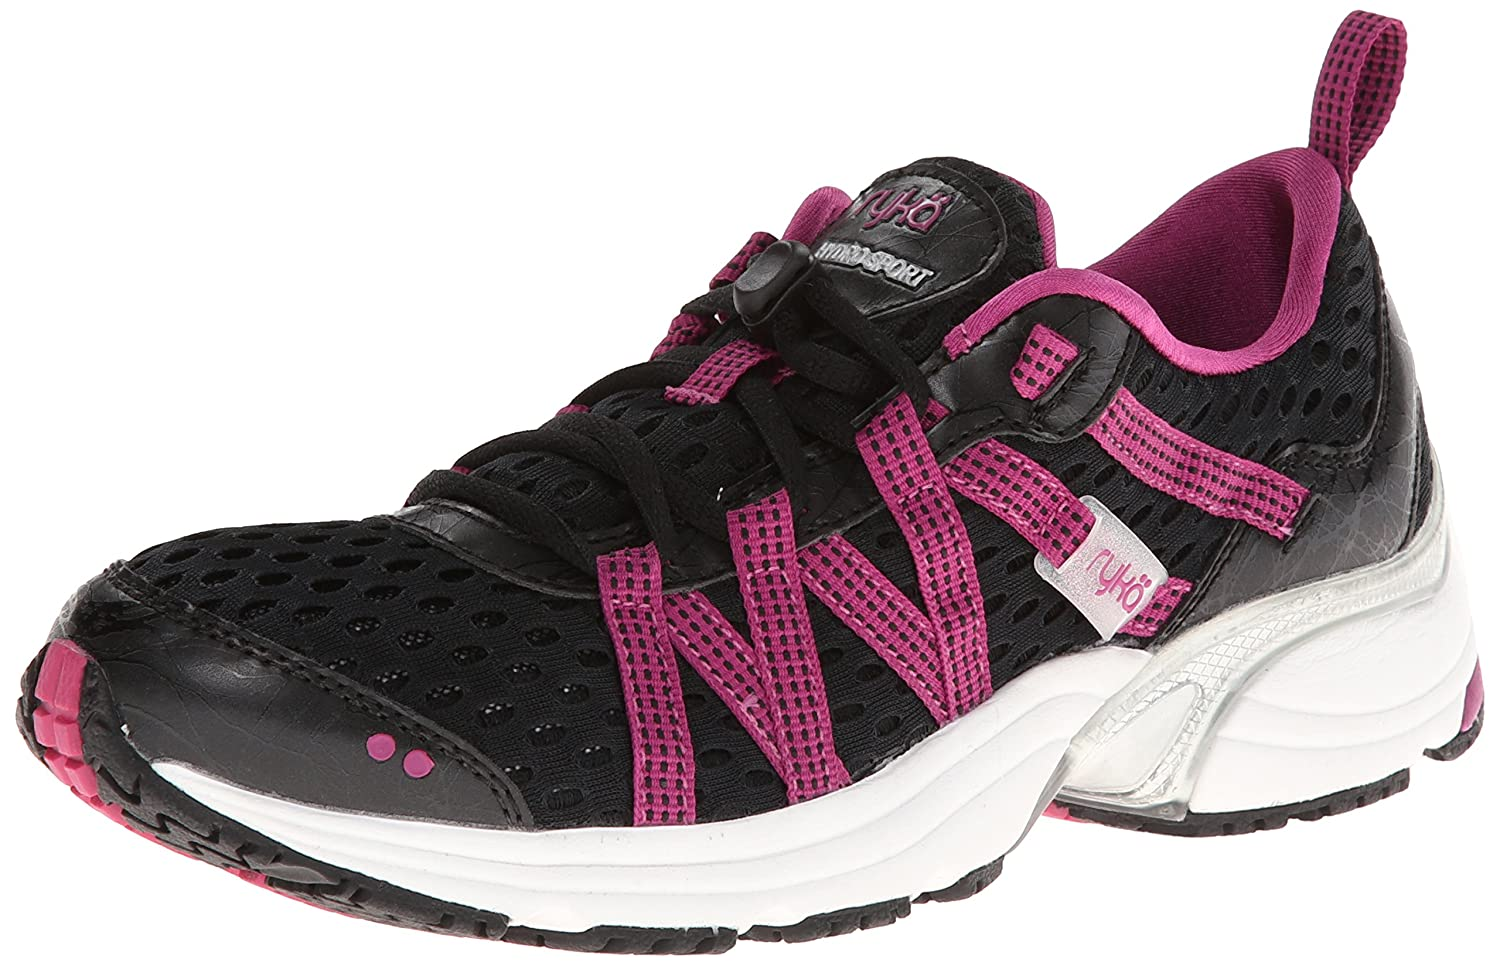 Ryka Women's Hydro Sport Water Shoe Cross-Training Shoe B00ISMFQD8 7 B(M) US|Black/Berry/Chrome Silver